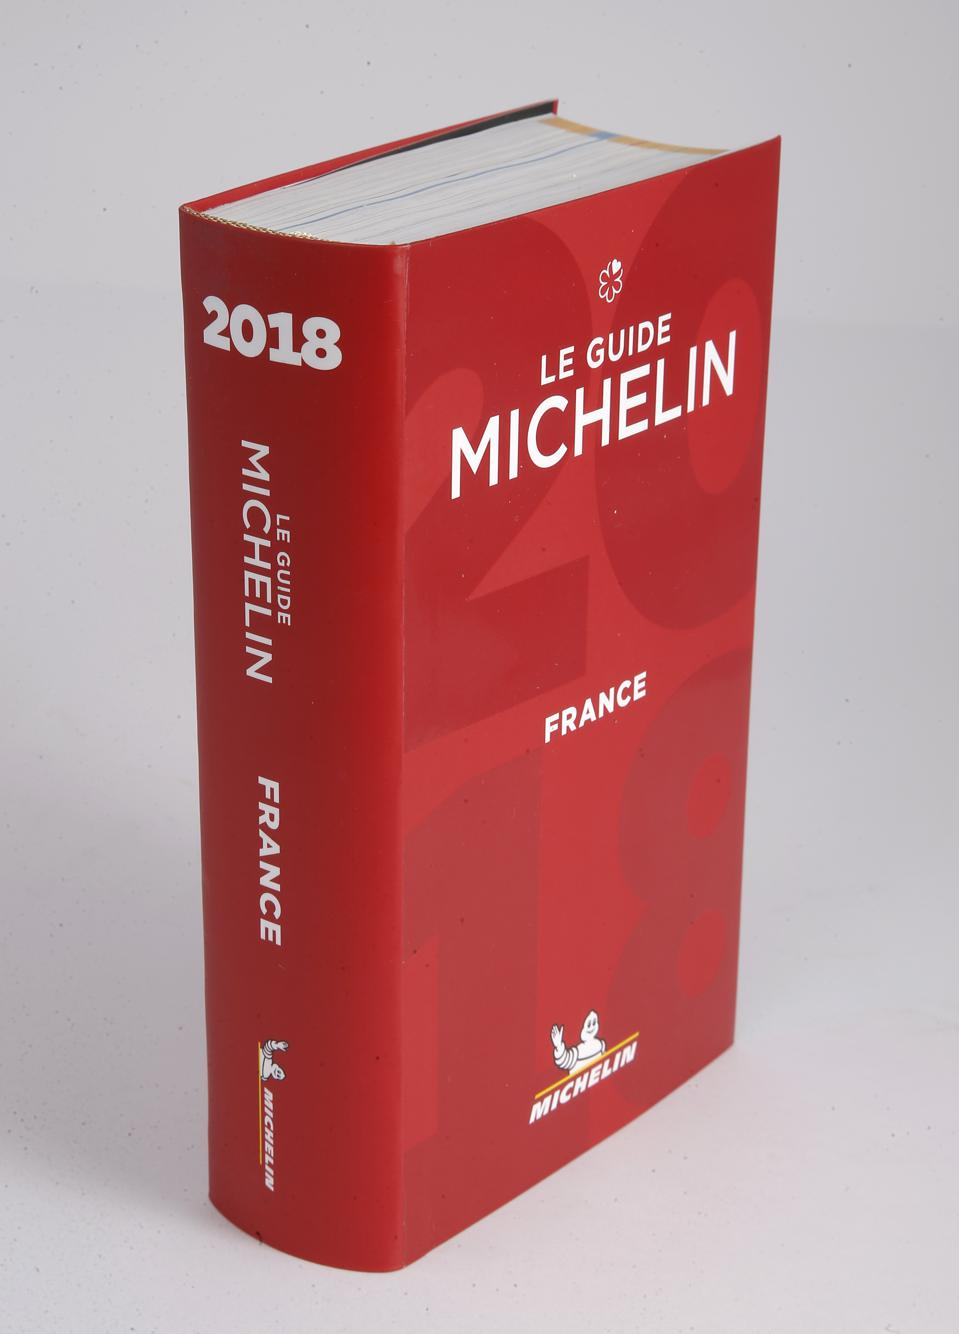 Michelin To Introduce A Restaurant Guide To The State of California